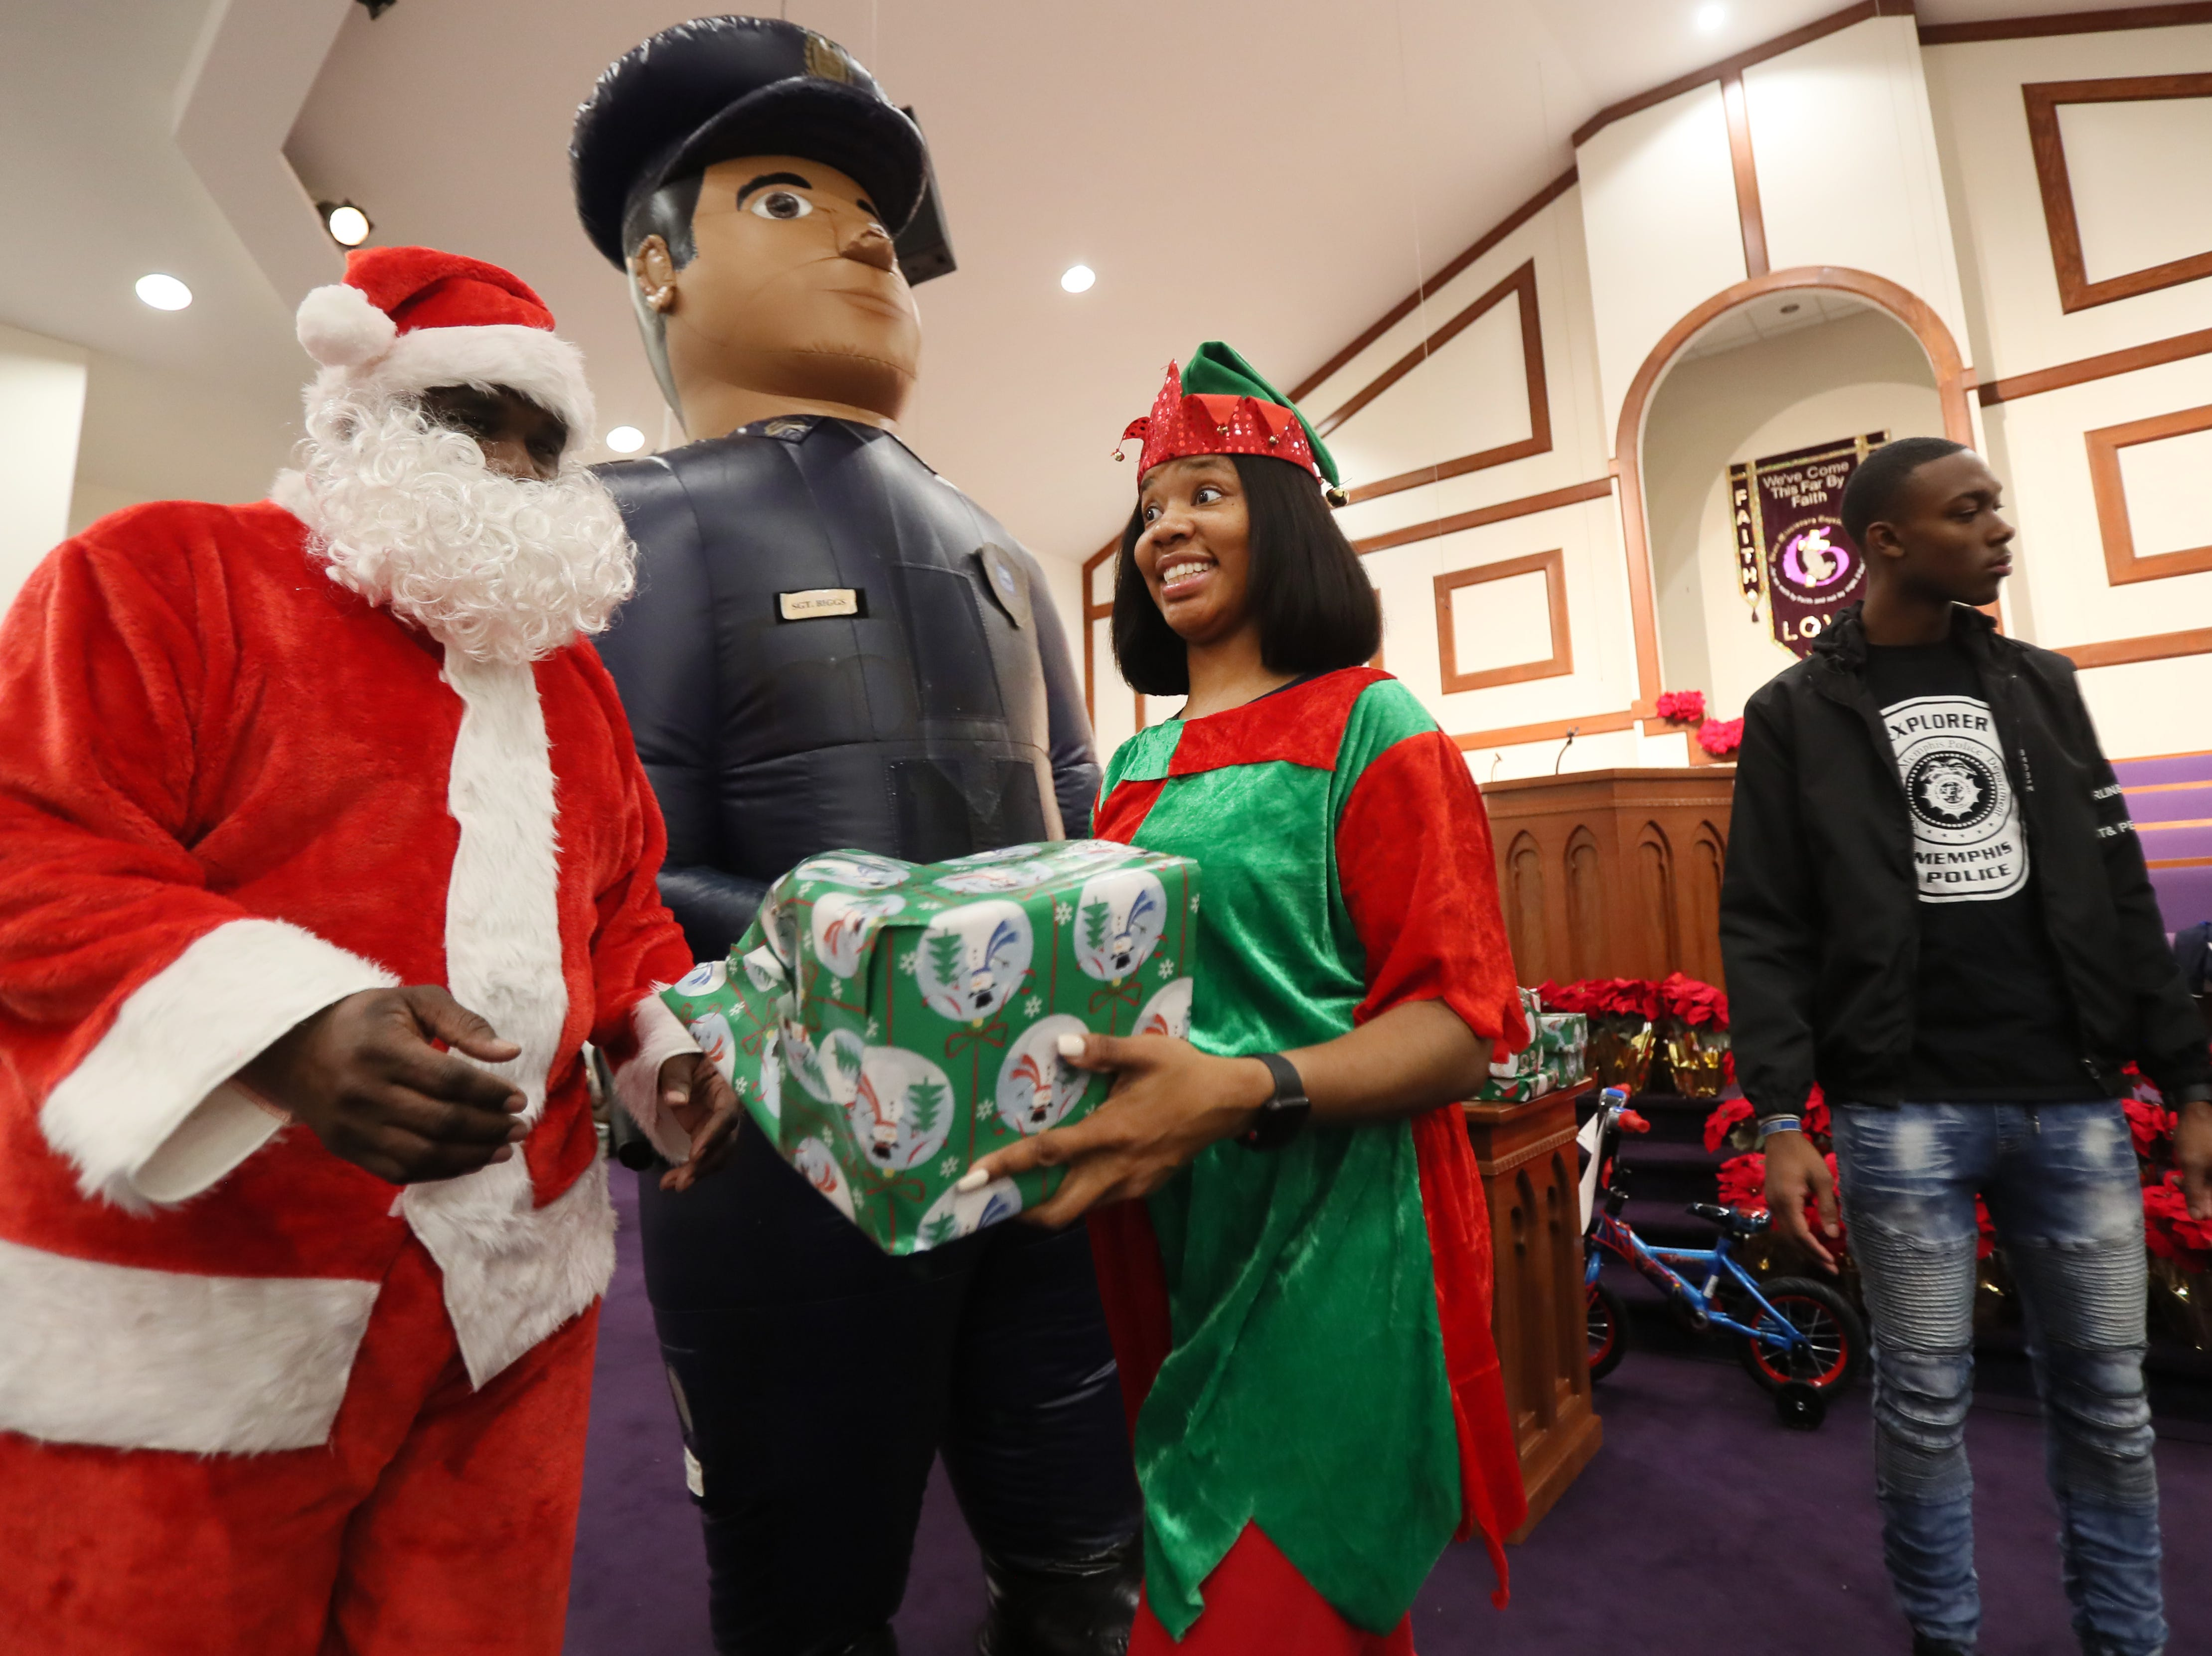 Officers Dominique McCraven, dressed as an elf and  Keith Payne as Santa, hand out gifts and as the MPD's Community Outreach Program brings Christmas cheer to dozens of families at Grace Missionary Baptist Church on Thursday, Dec. 20, 2018.